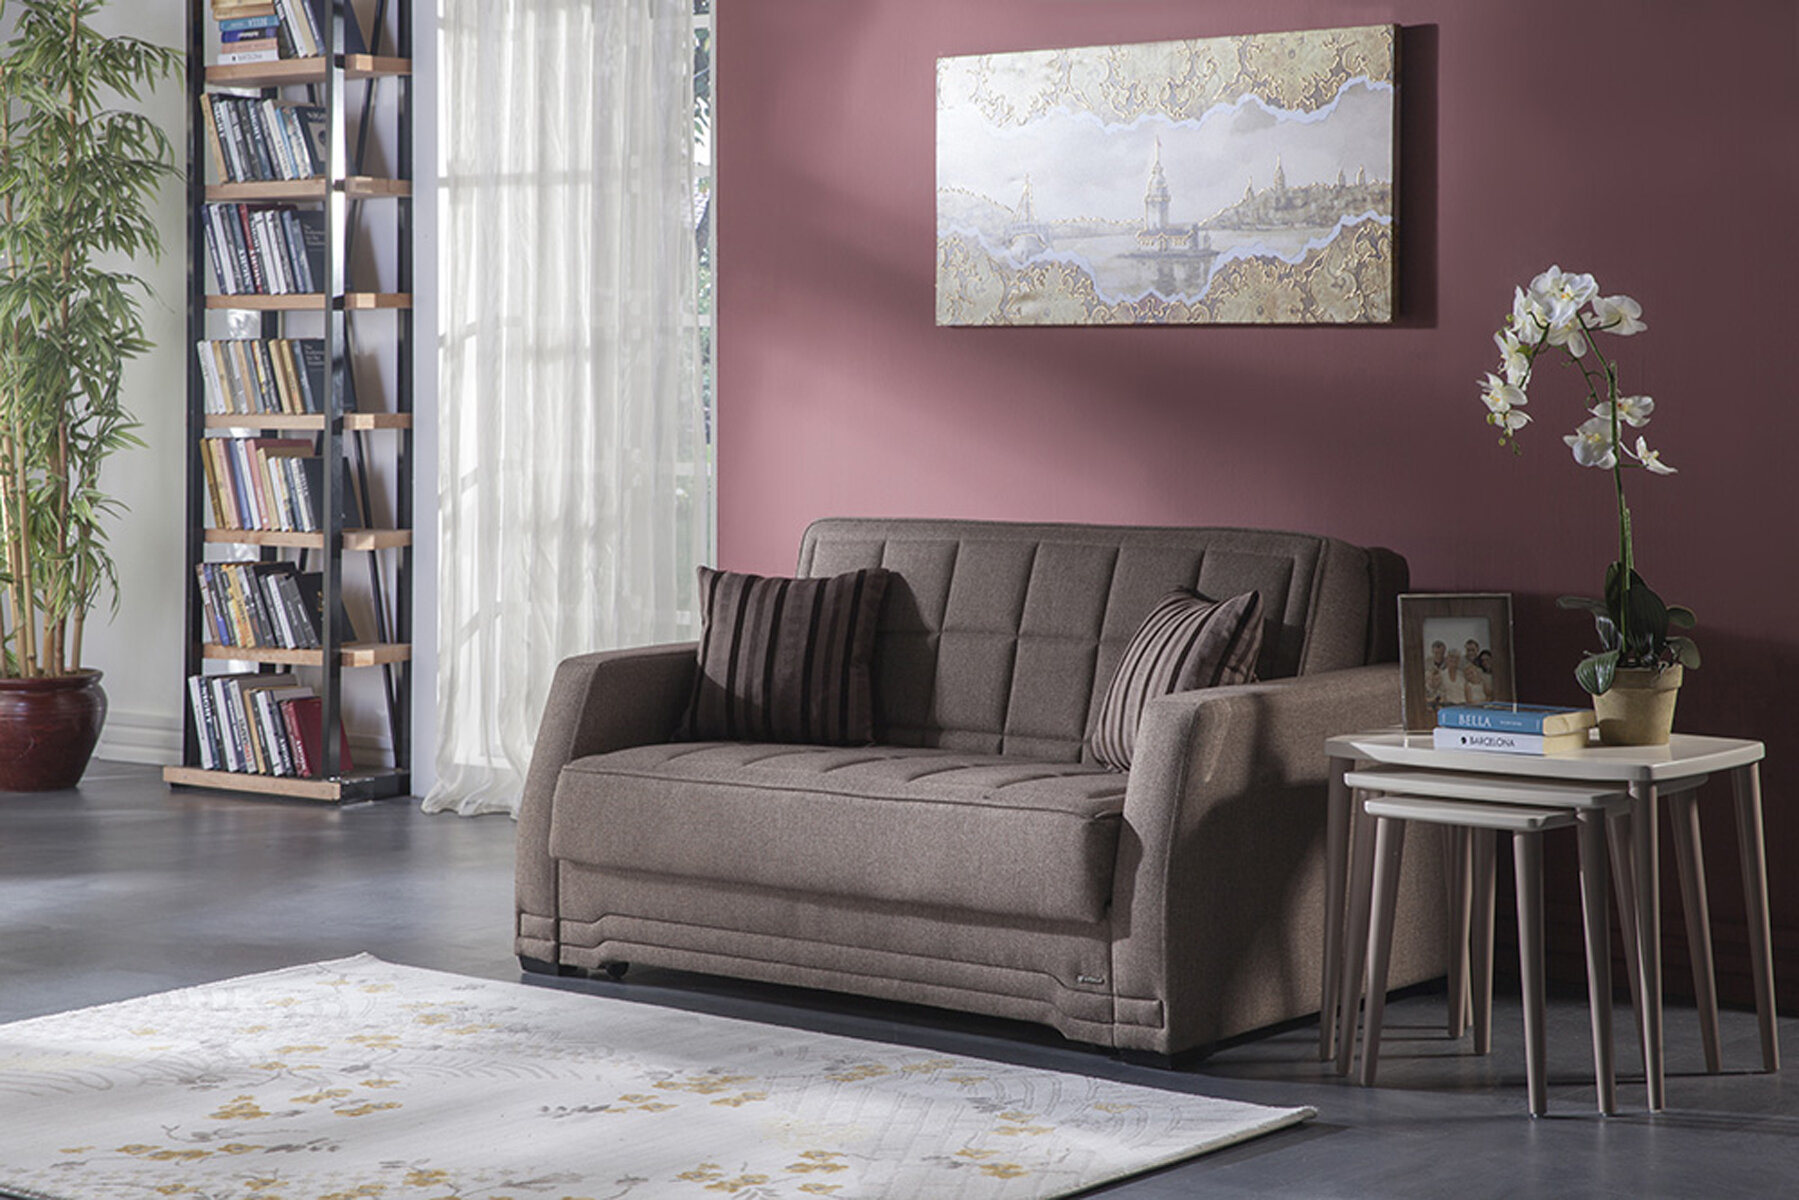 Ebern Designs Thoreau Convertible Sleeper Sofa Wayfair